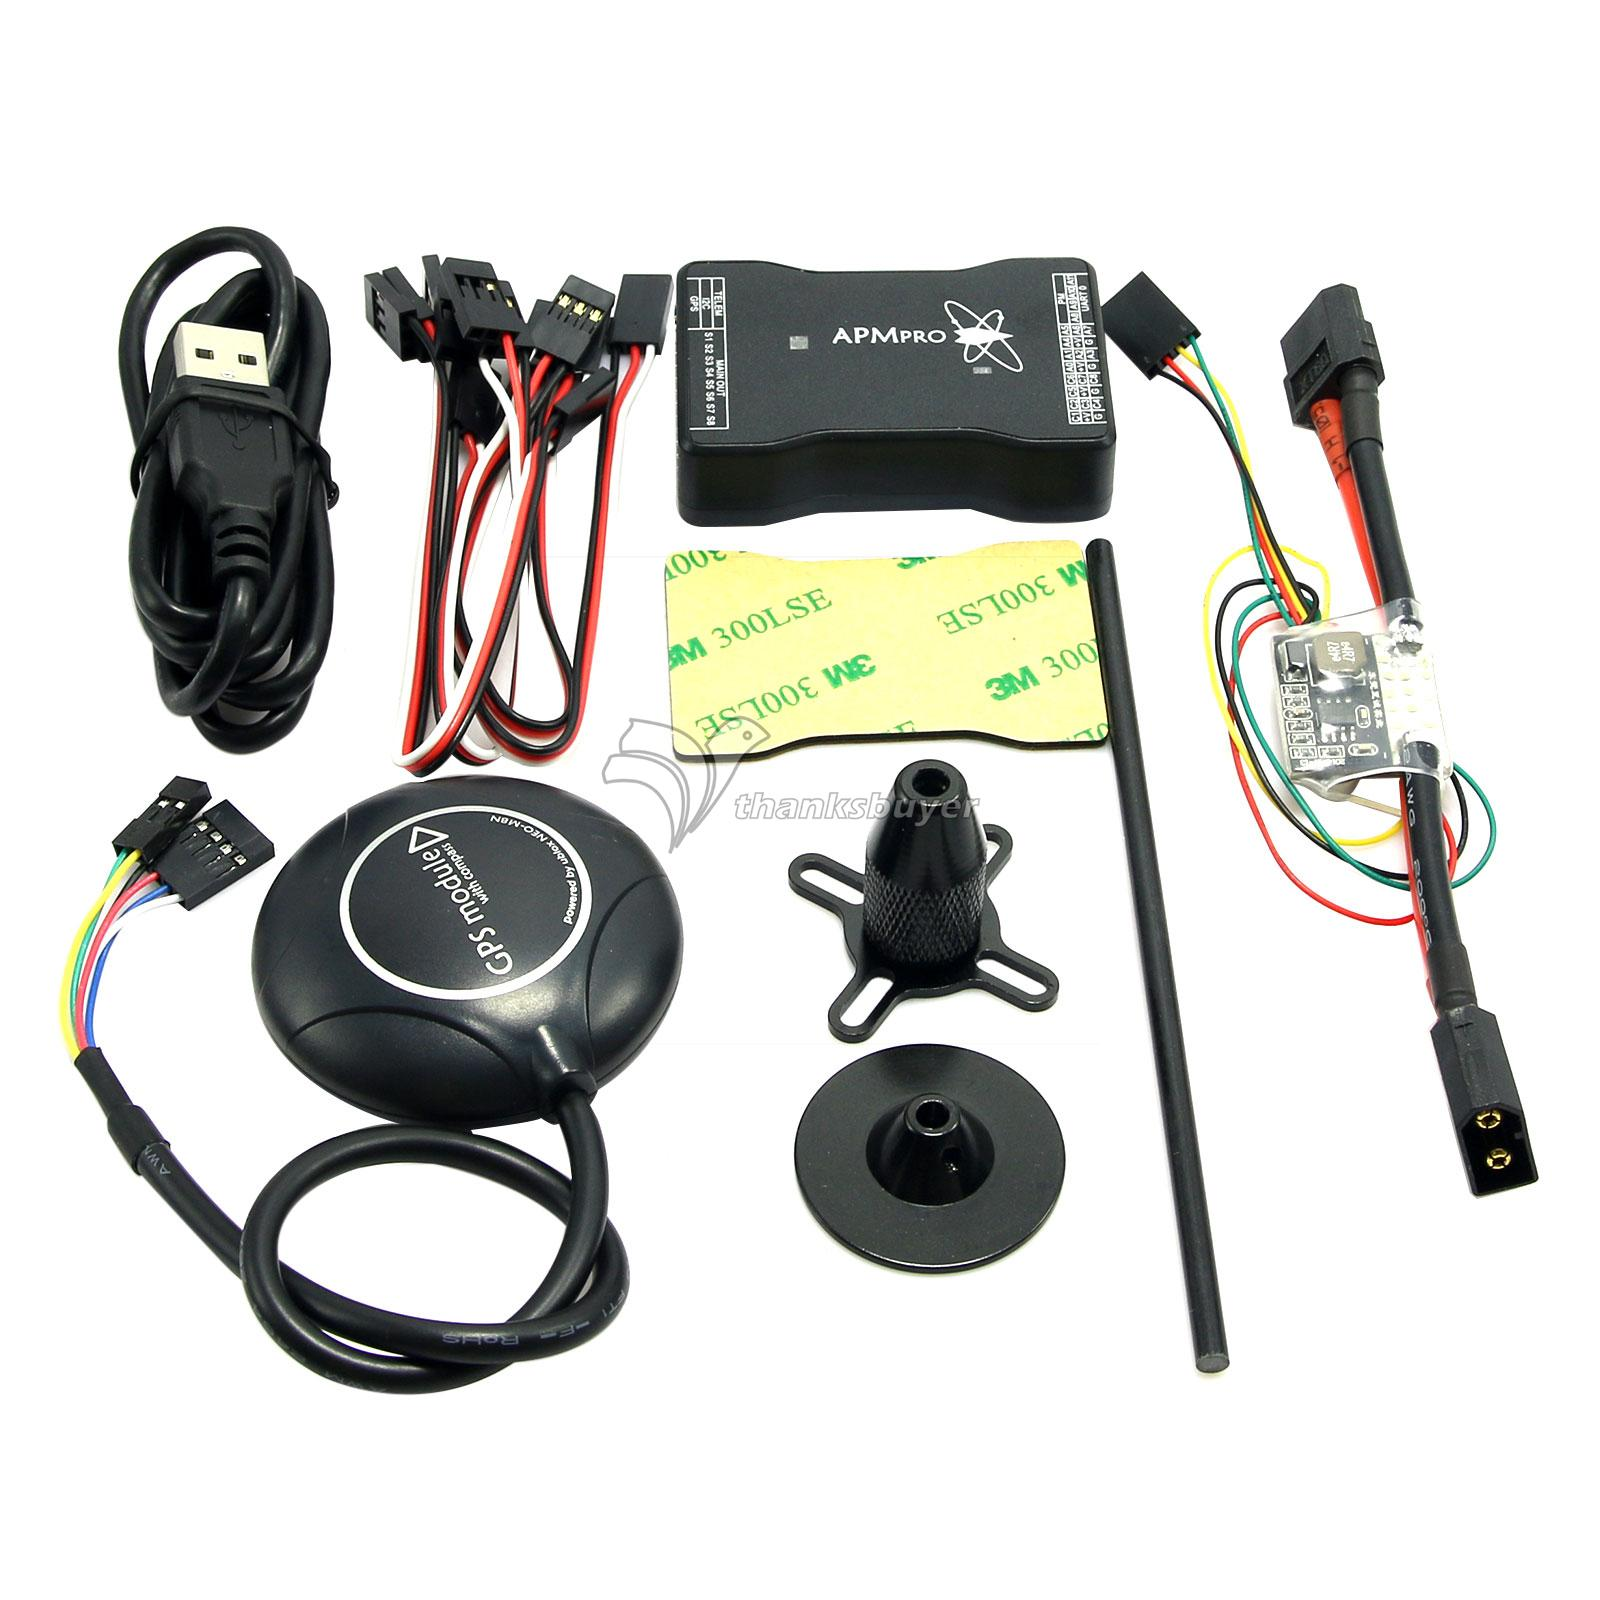 New Mini APM PRO Flight Control with Ulbox Neo-M8N GPS & Power Module & Data Cable for FPV Multicopter Aircraft